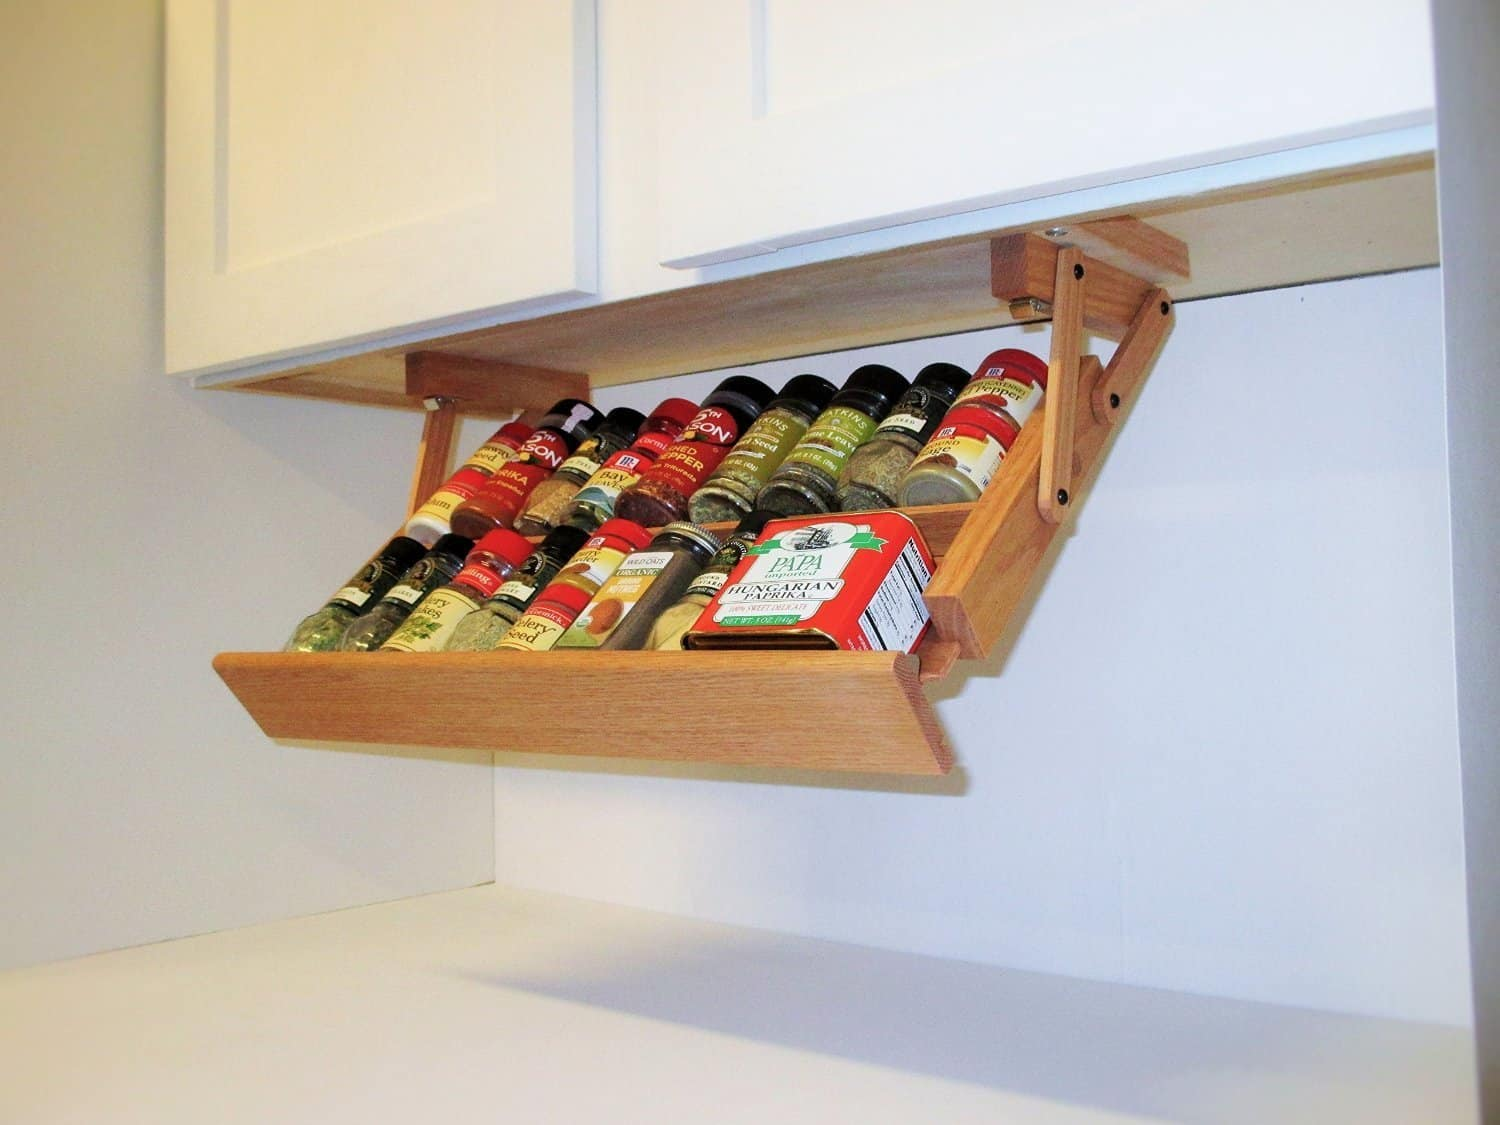 10+ Best Ways to Organize Spices | www.thepinningmama.com